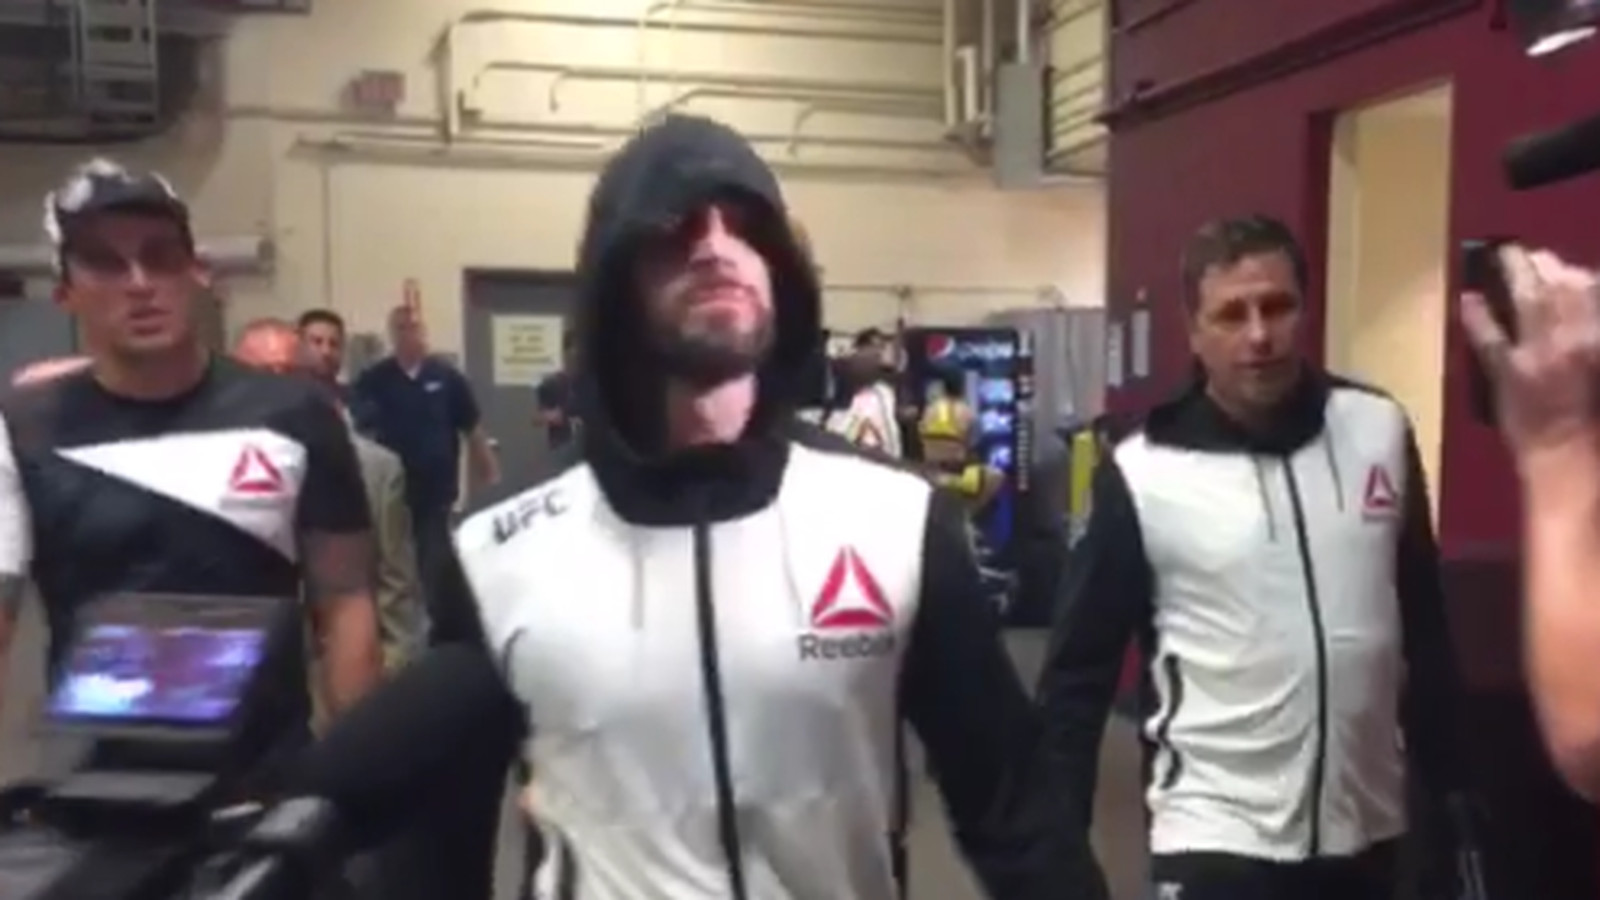 CM Punk walked out to Cult of Personality at UFC 203